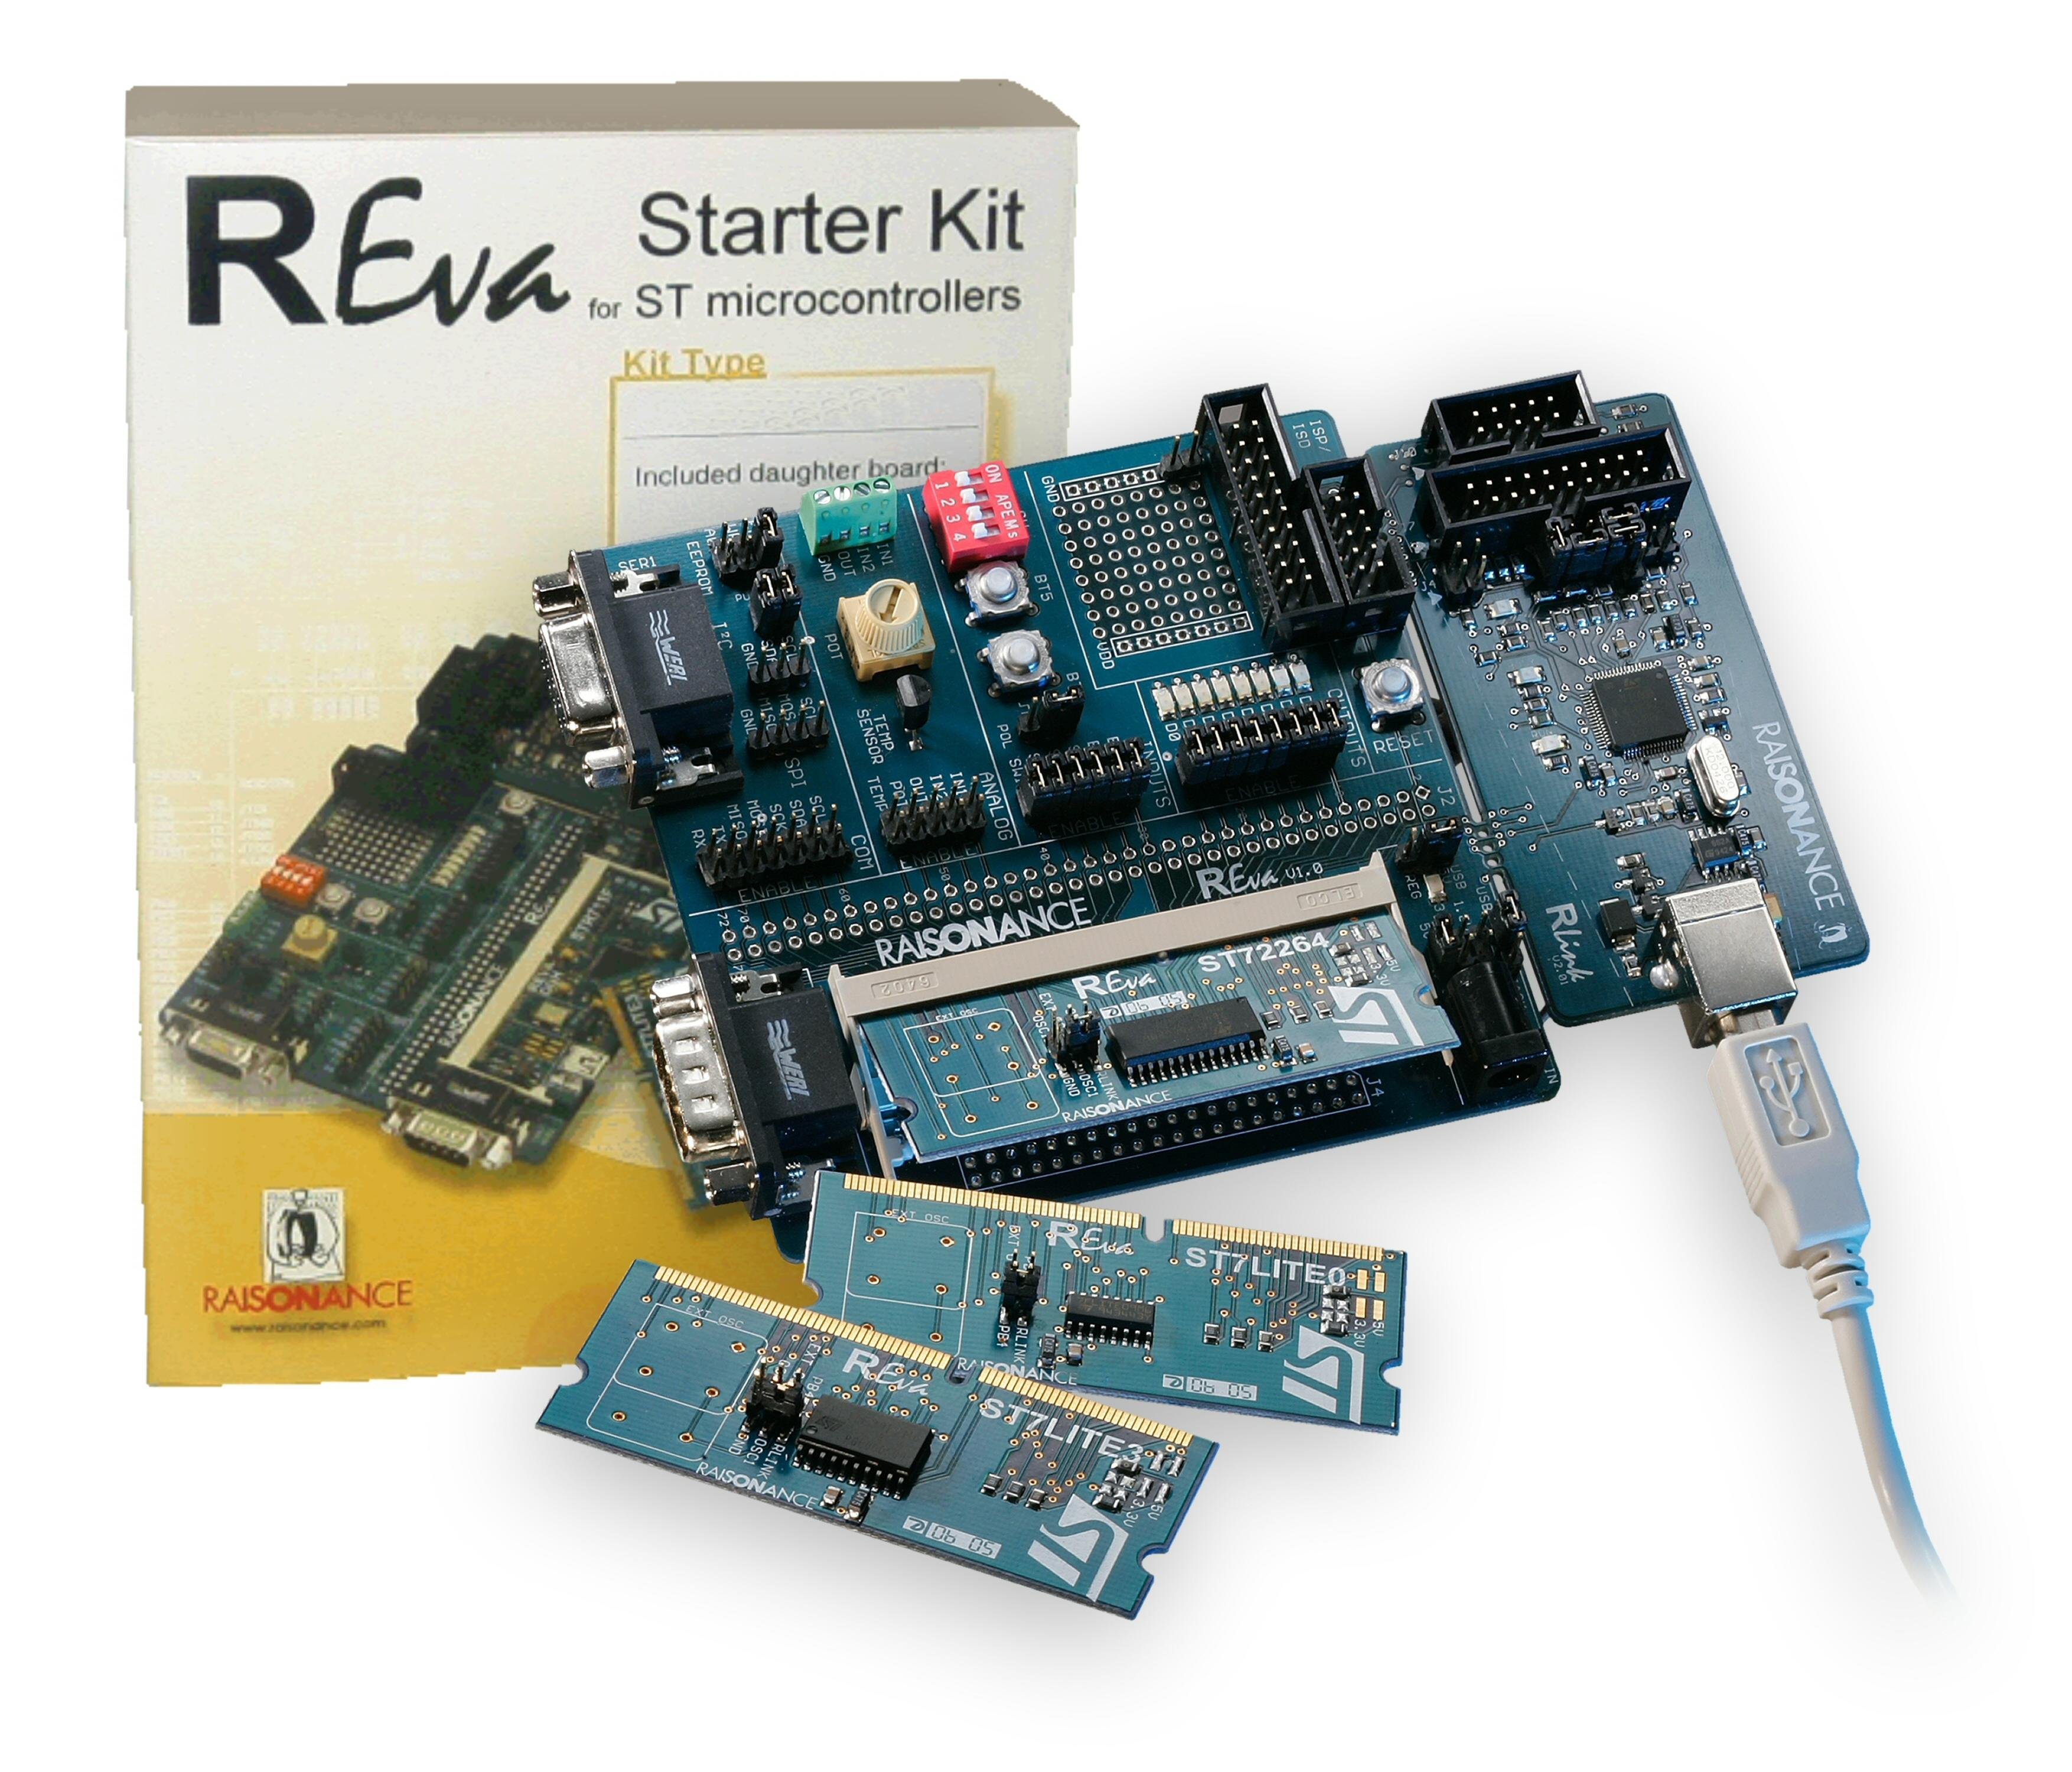 Full-Featured, Low-Cost Development Kit for STMicroelectronics